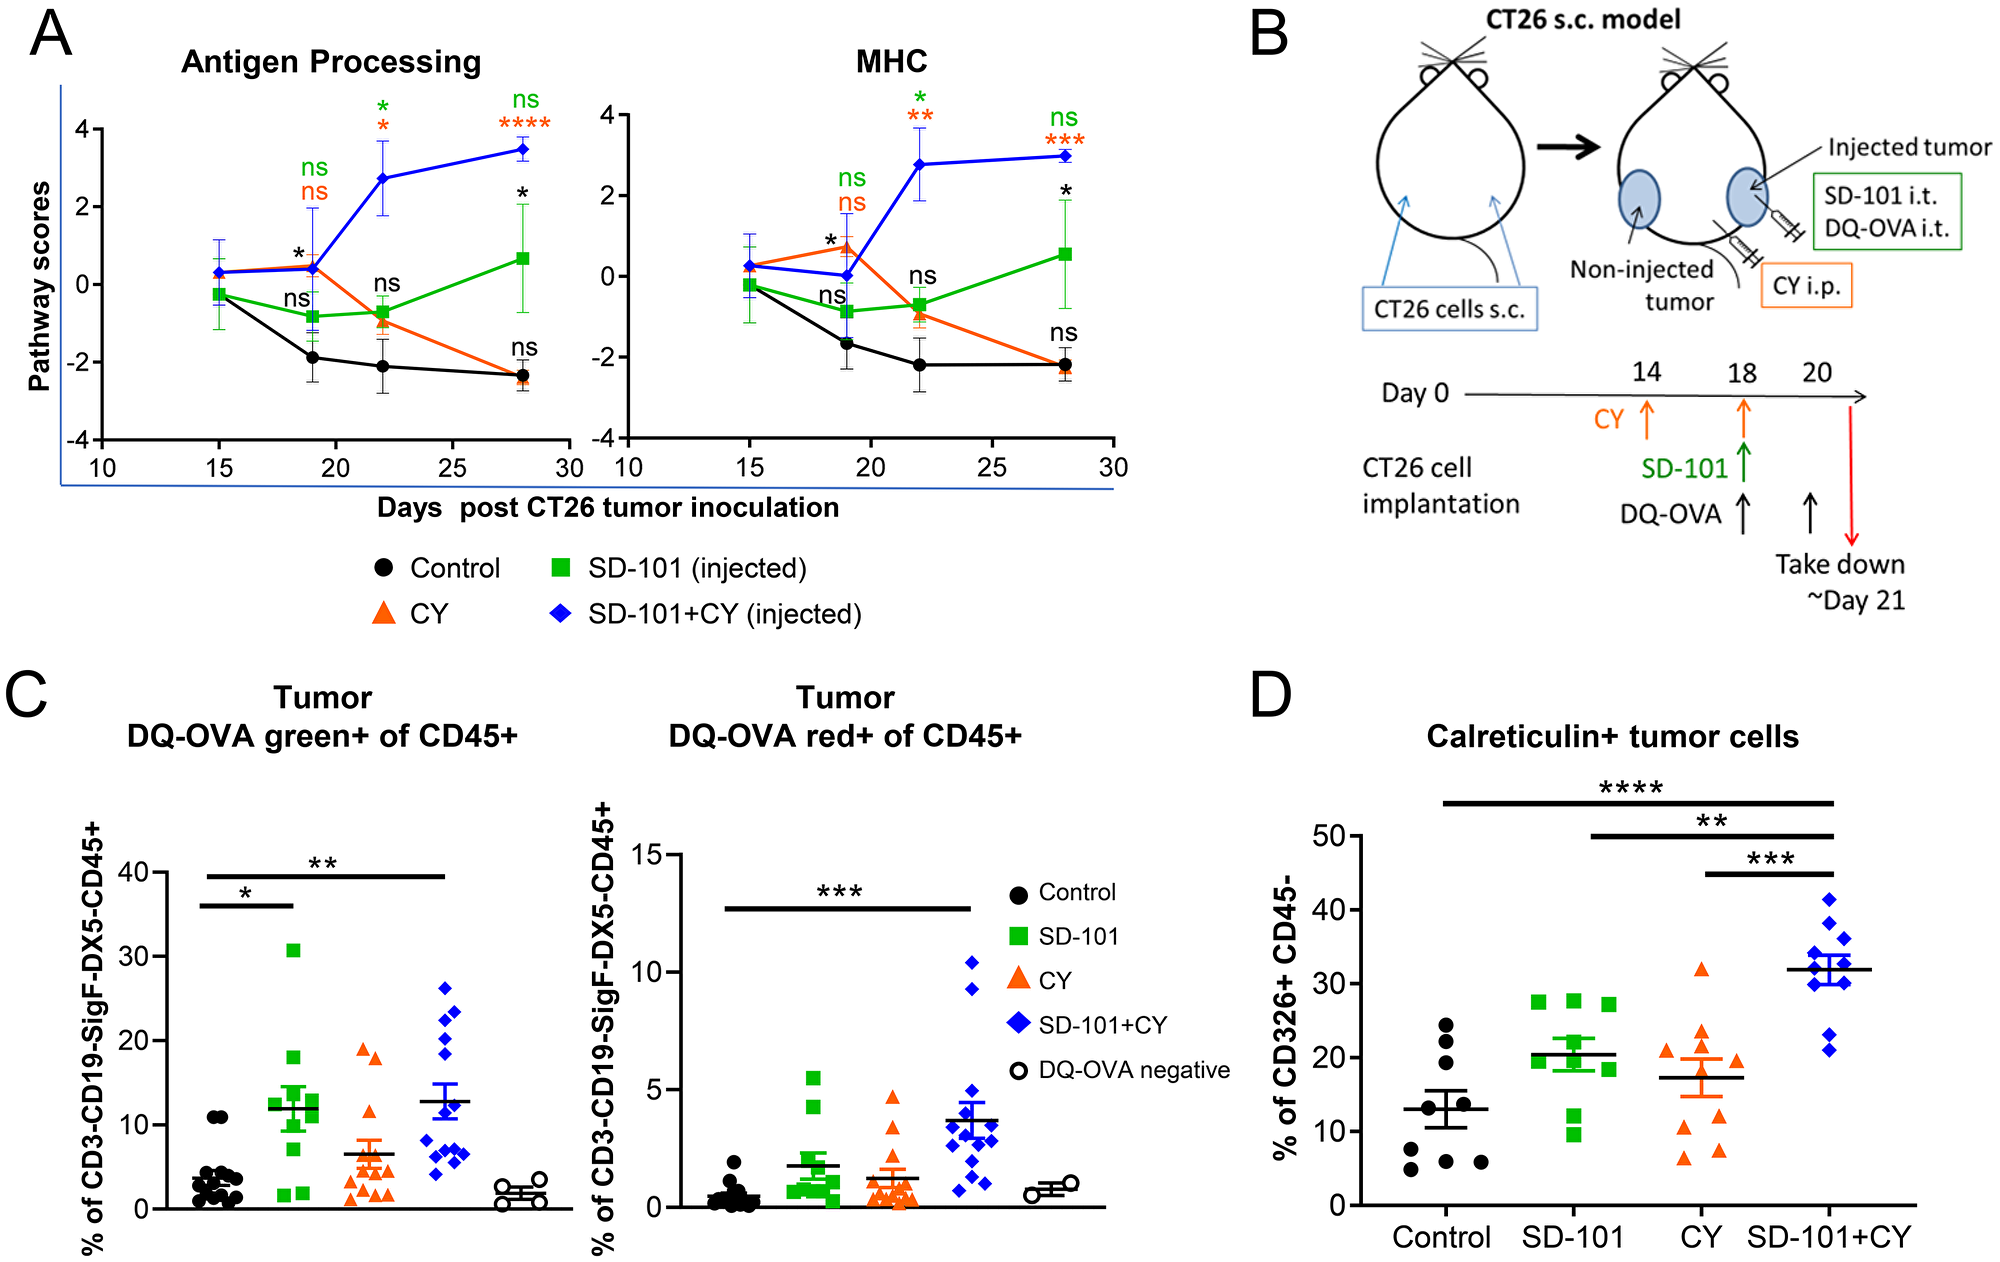 SD-101 and low-dose CY combination increases immunogenic cell death and APC function within the tumor.